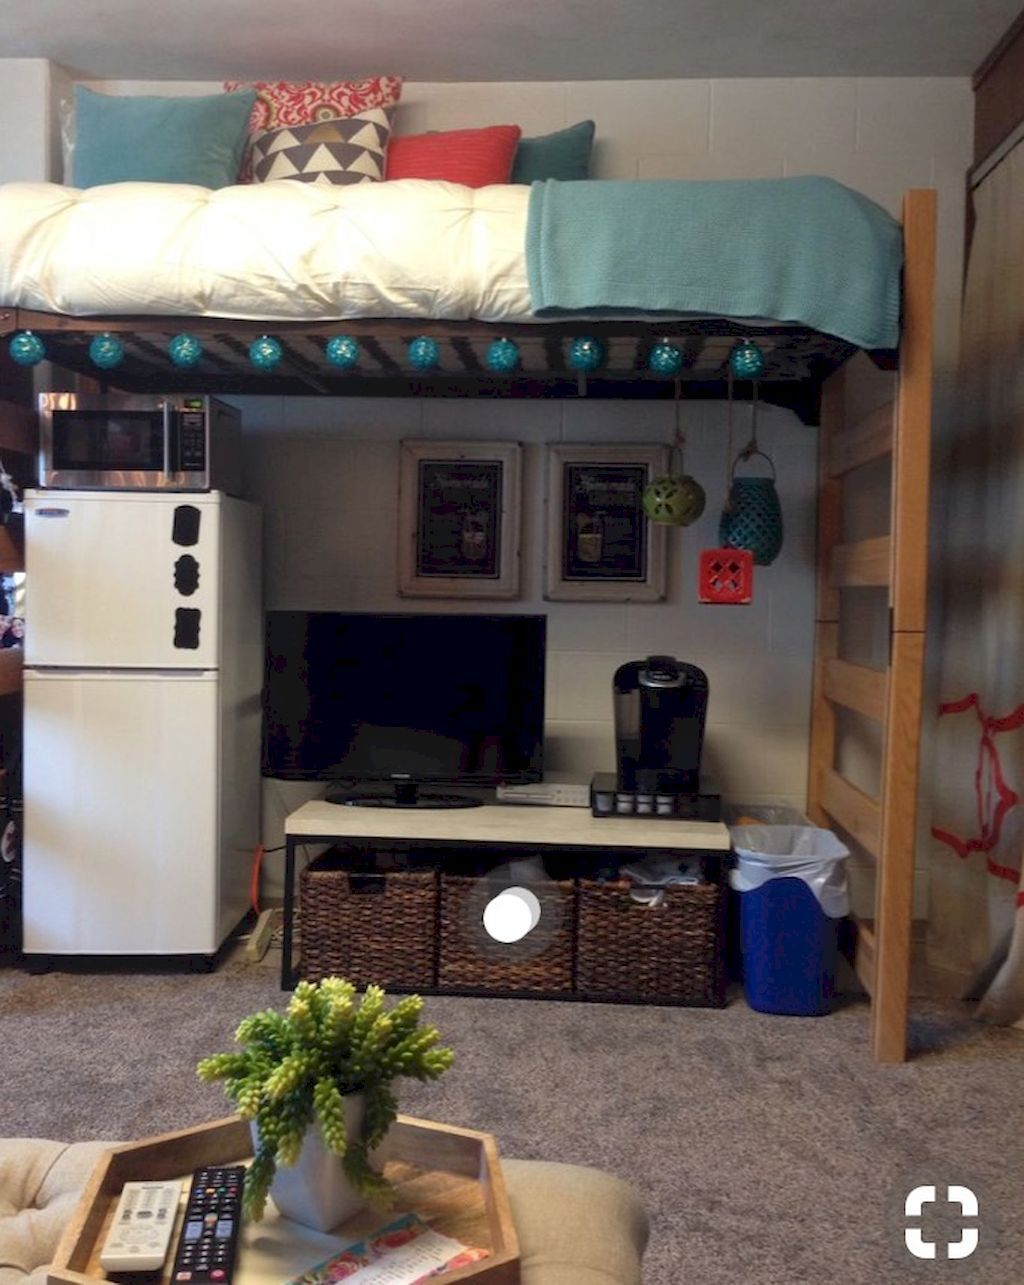 Ideas For Dorm Room: 100+ Cute Loft Beds College Dorm Room Design Ideas For